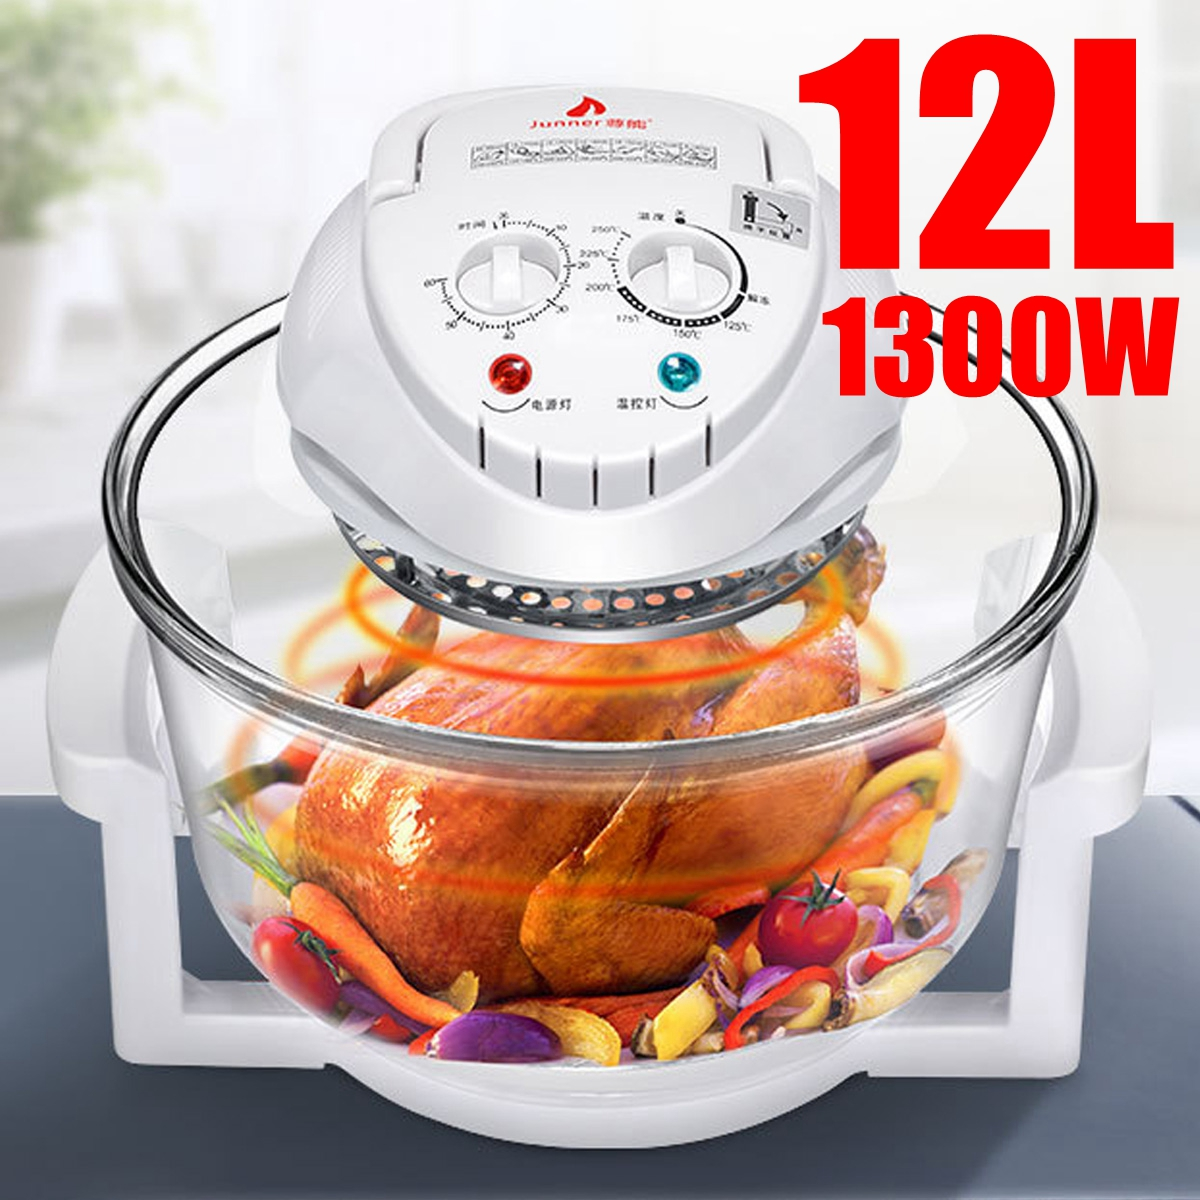 1300W Conventional Infrared Oven Roaster Air Fryer Turbo Electric Cooker 12L 110V-240V Multifunction BBQ Bake Cook With Recipe